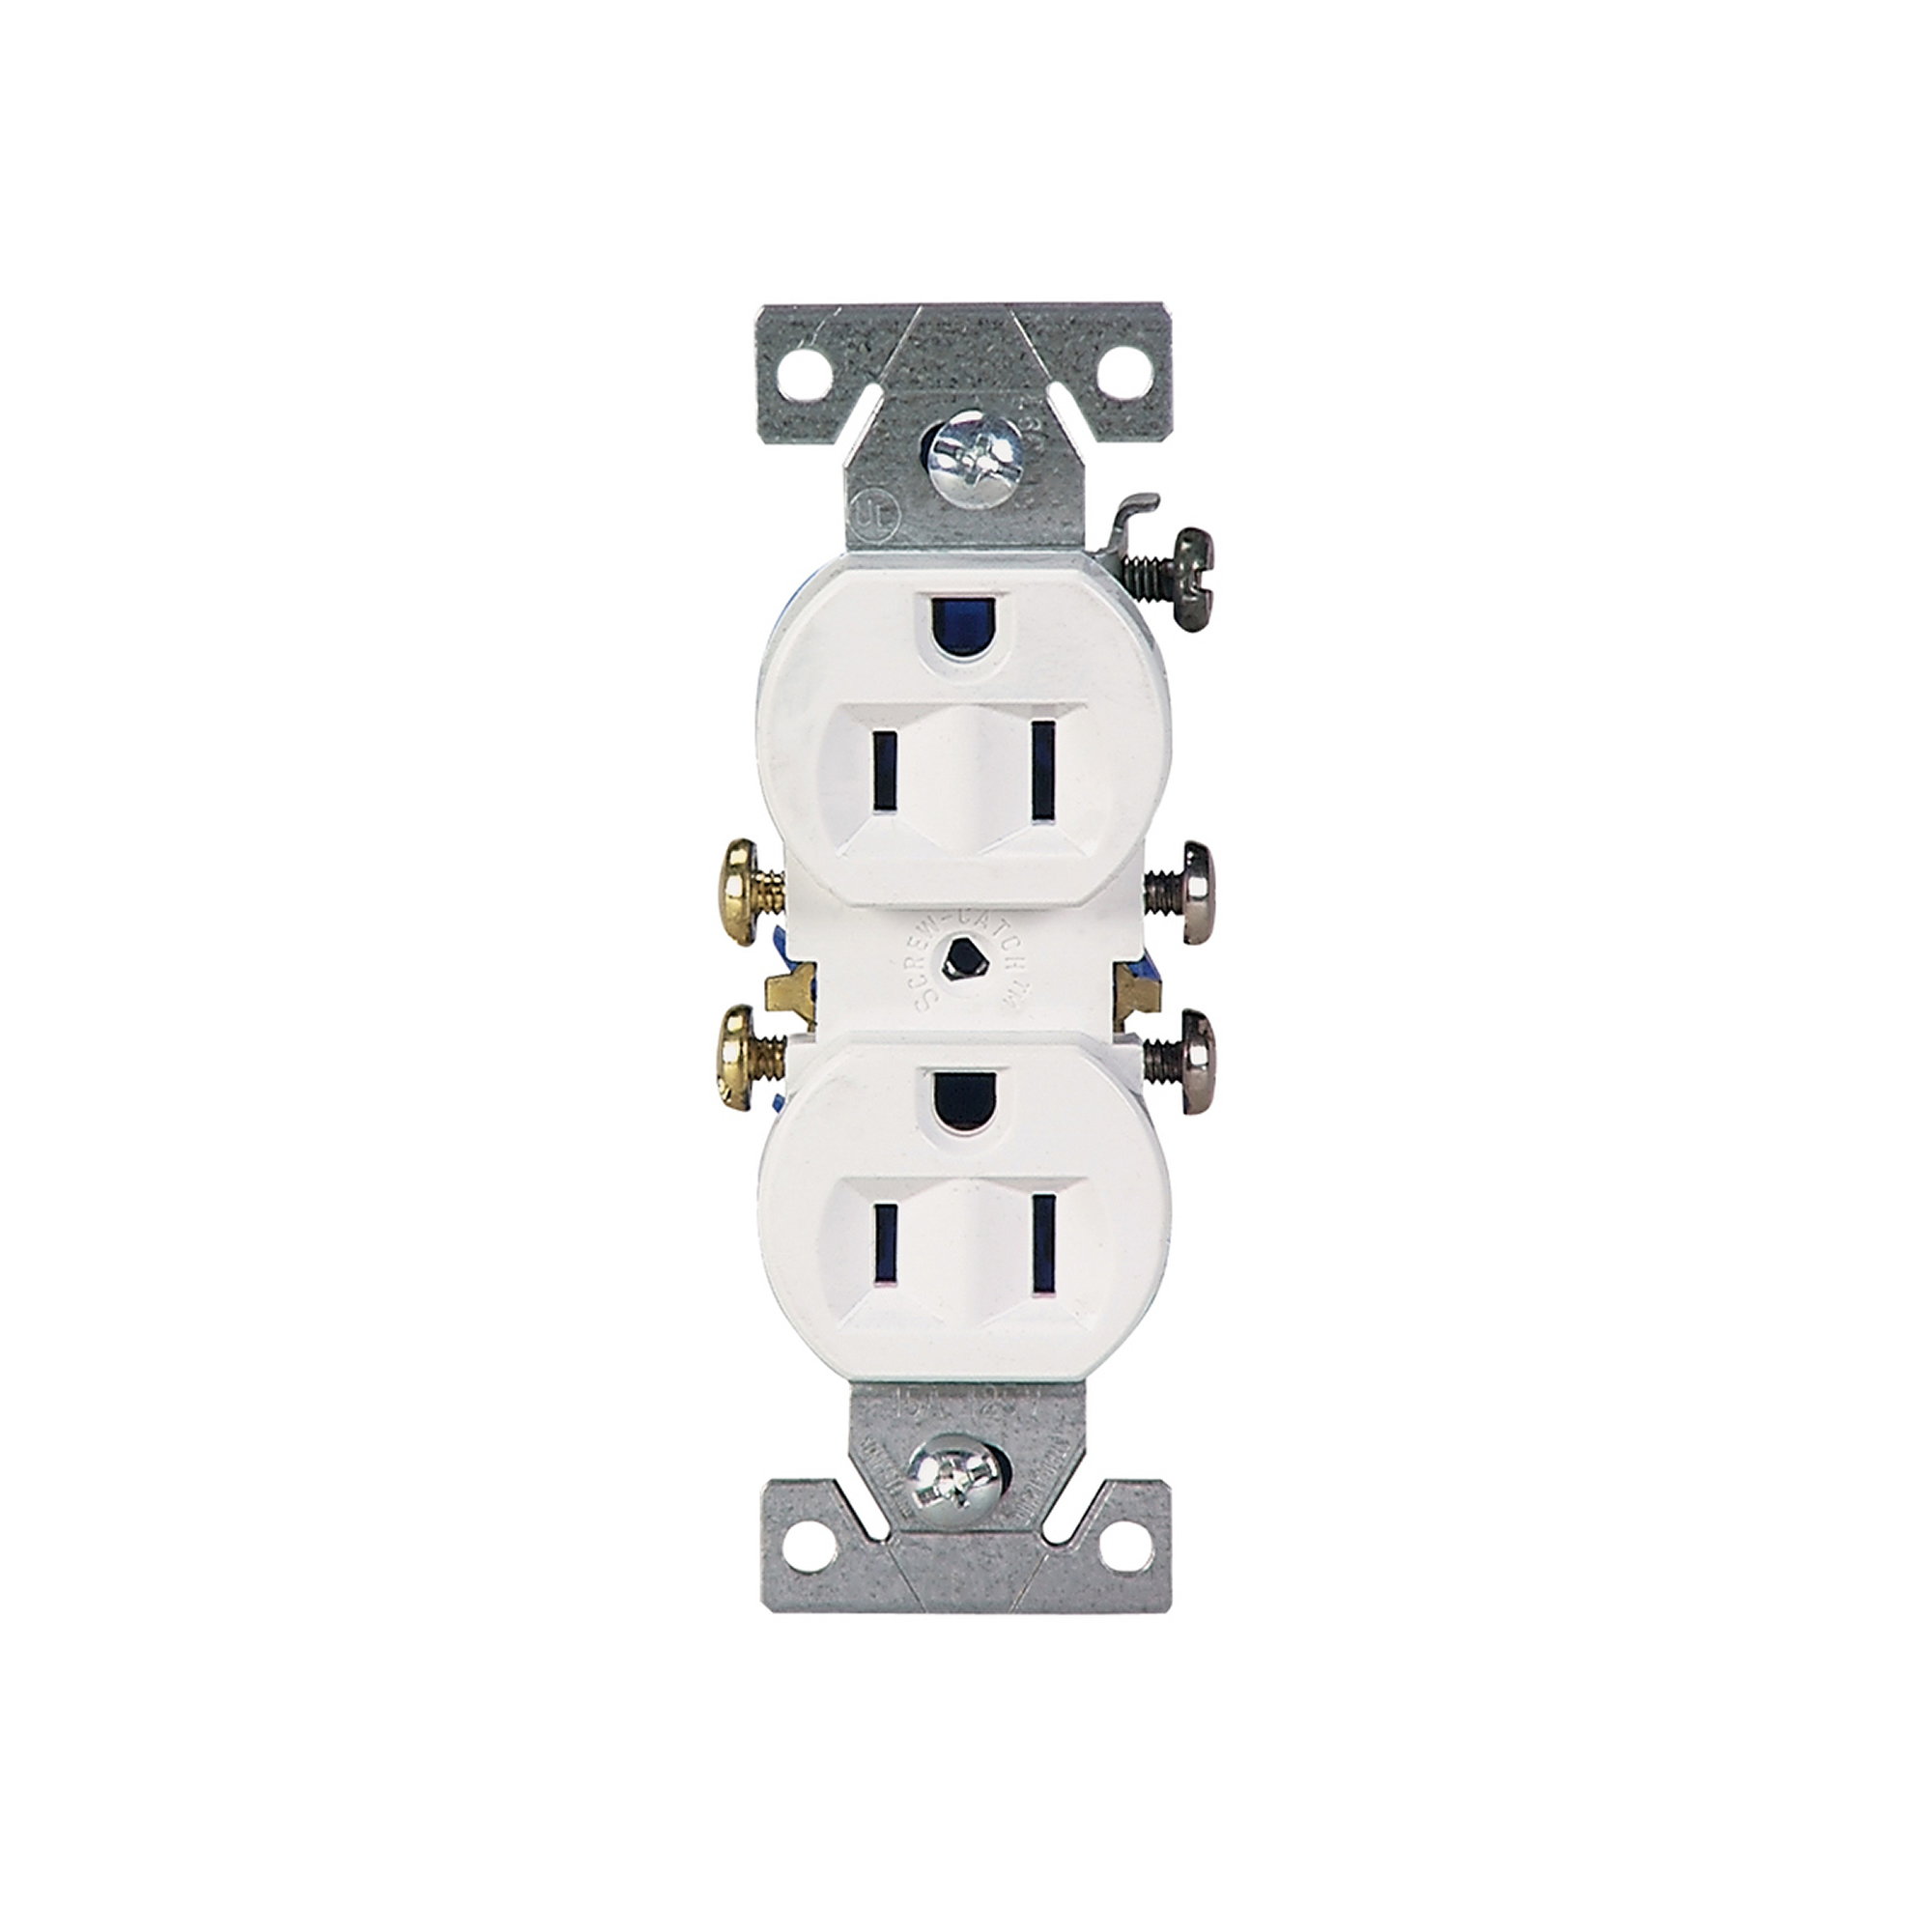 from a light switch wiring a gfi receptacle cooper wiring devices 15 amp white duplex receptacle ... wiring a duplex receptacle